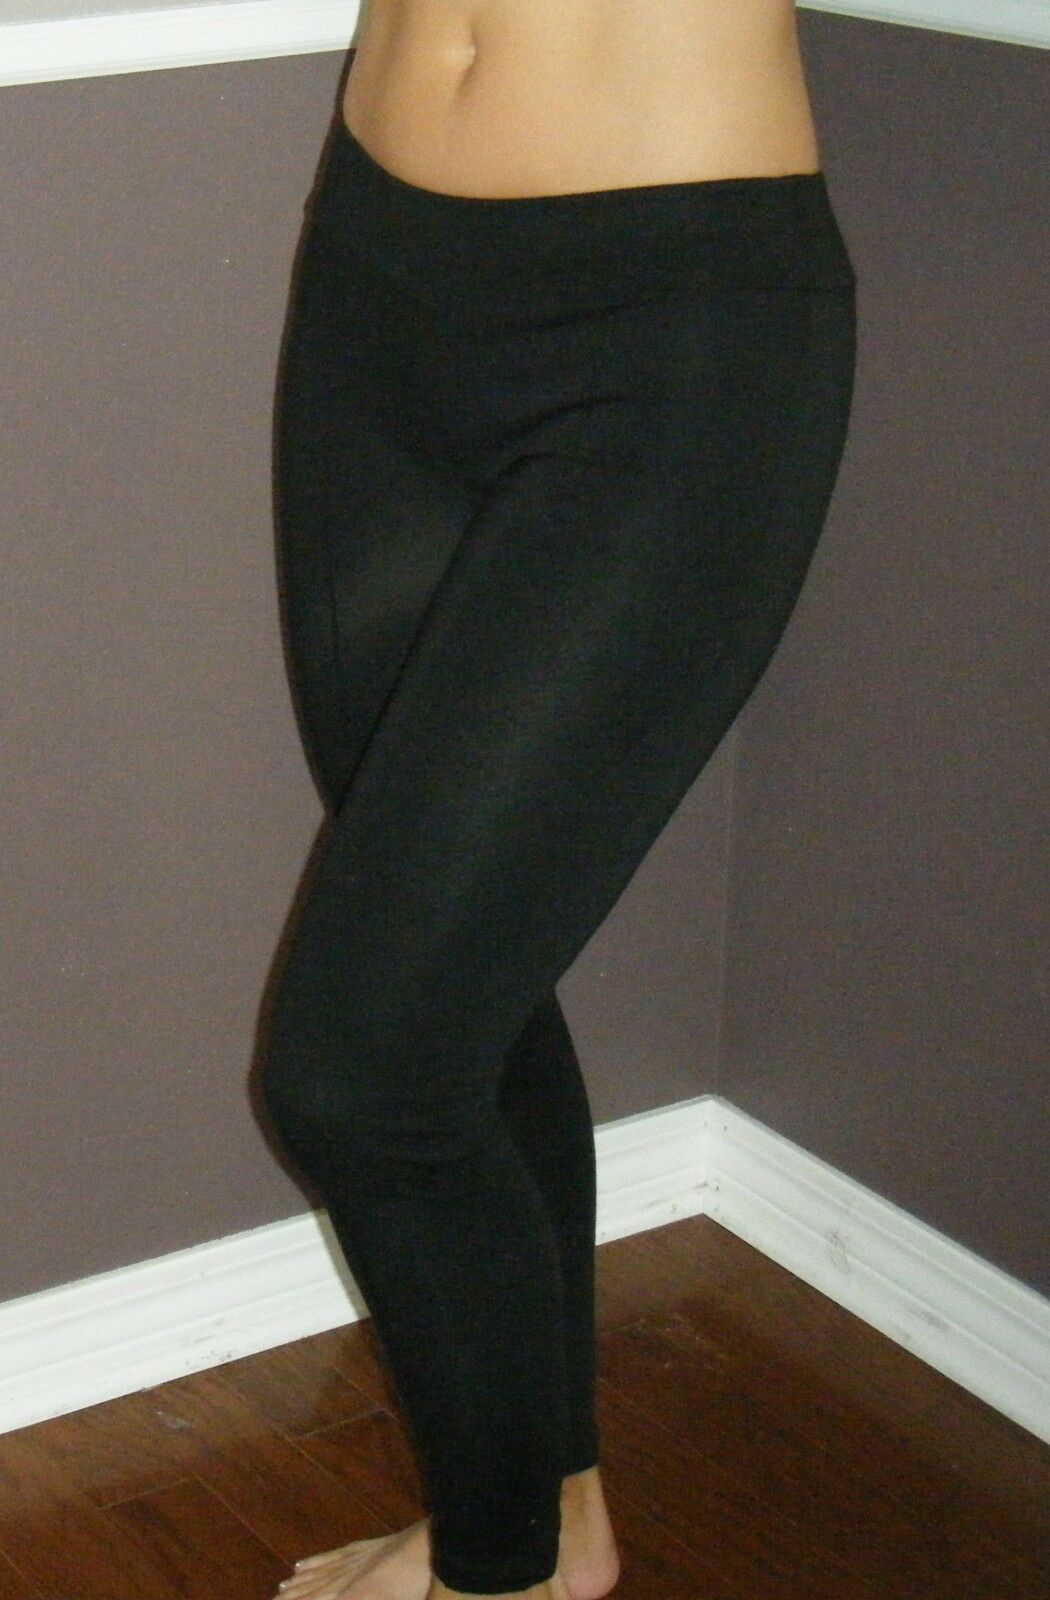 Sexy Low Rise Leggings Stretch Yoga Lounge Ankle Pants Gym Workout Black S/M/L